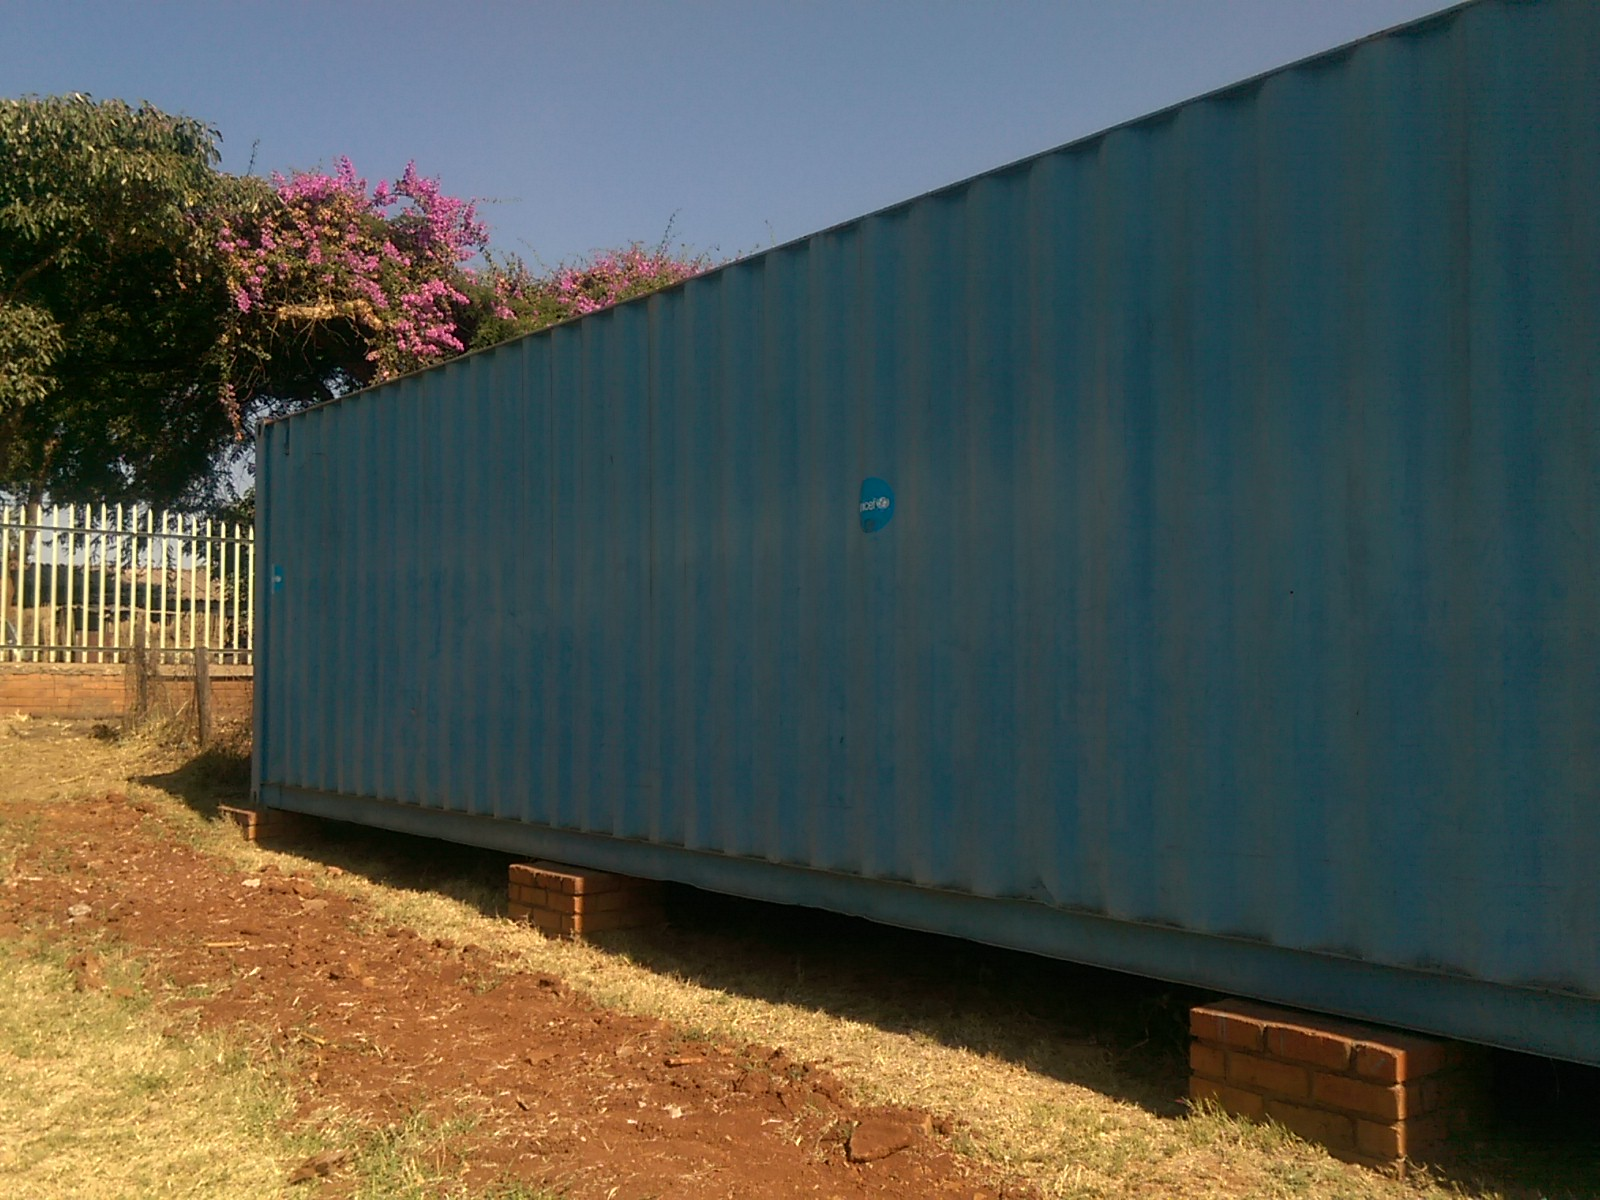 A big blue shipping container on scrubby ground with pink blossom tree in the background